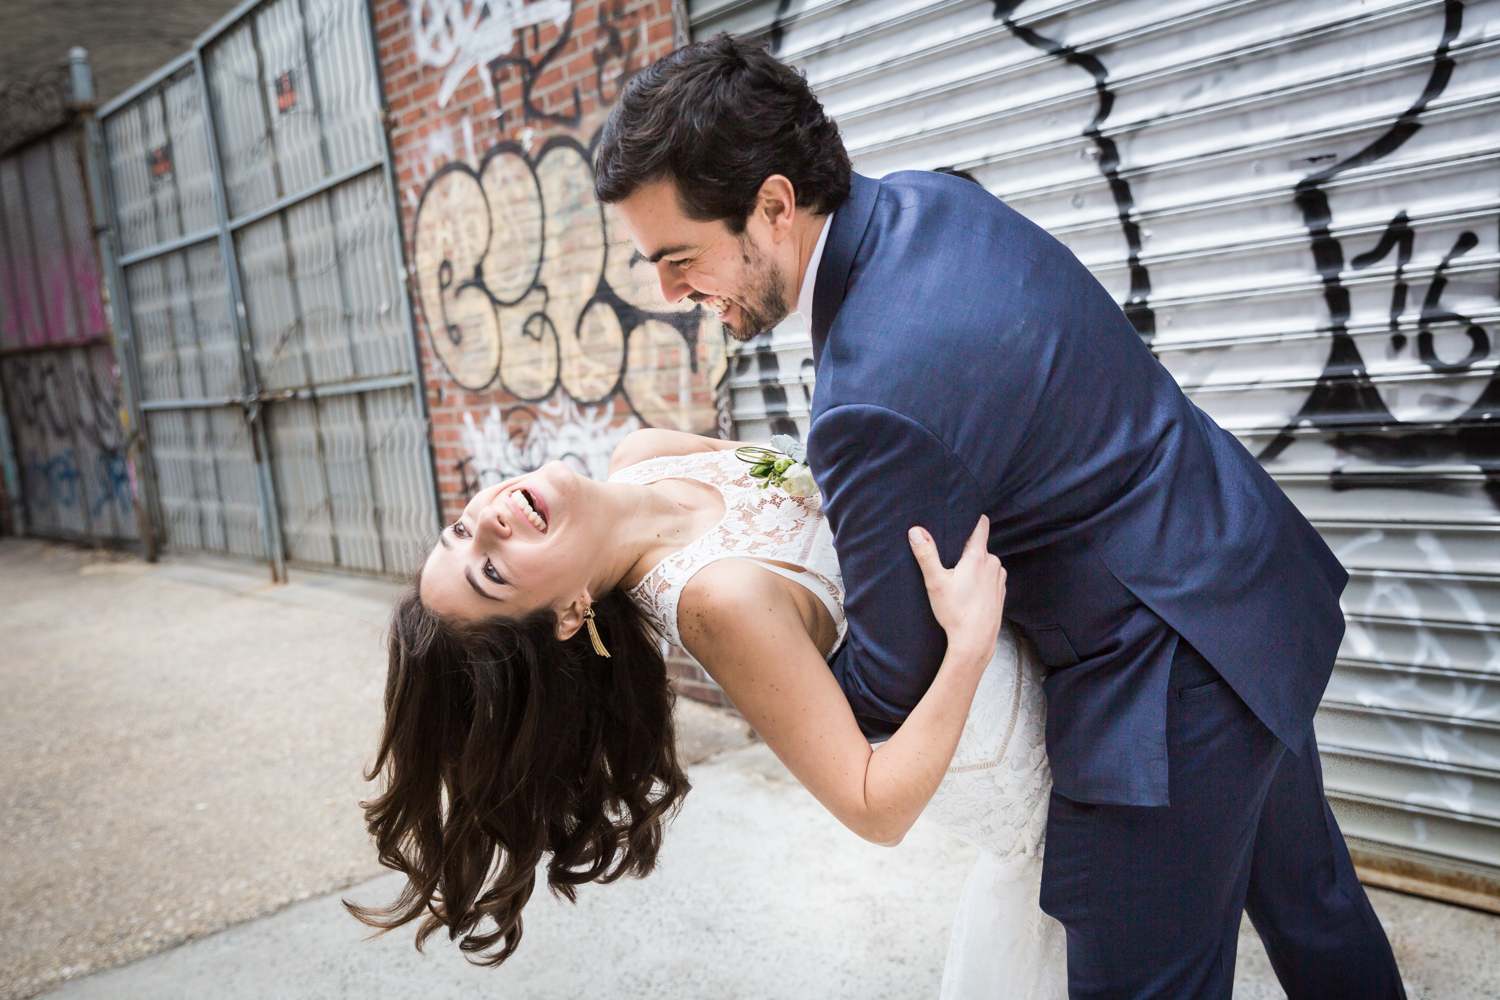 Groom dipping bride with graffiti background before a Wythe Hotel wedding